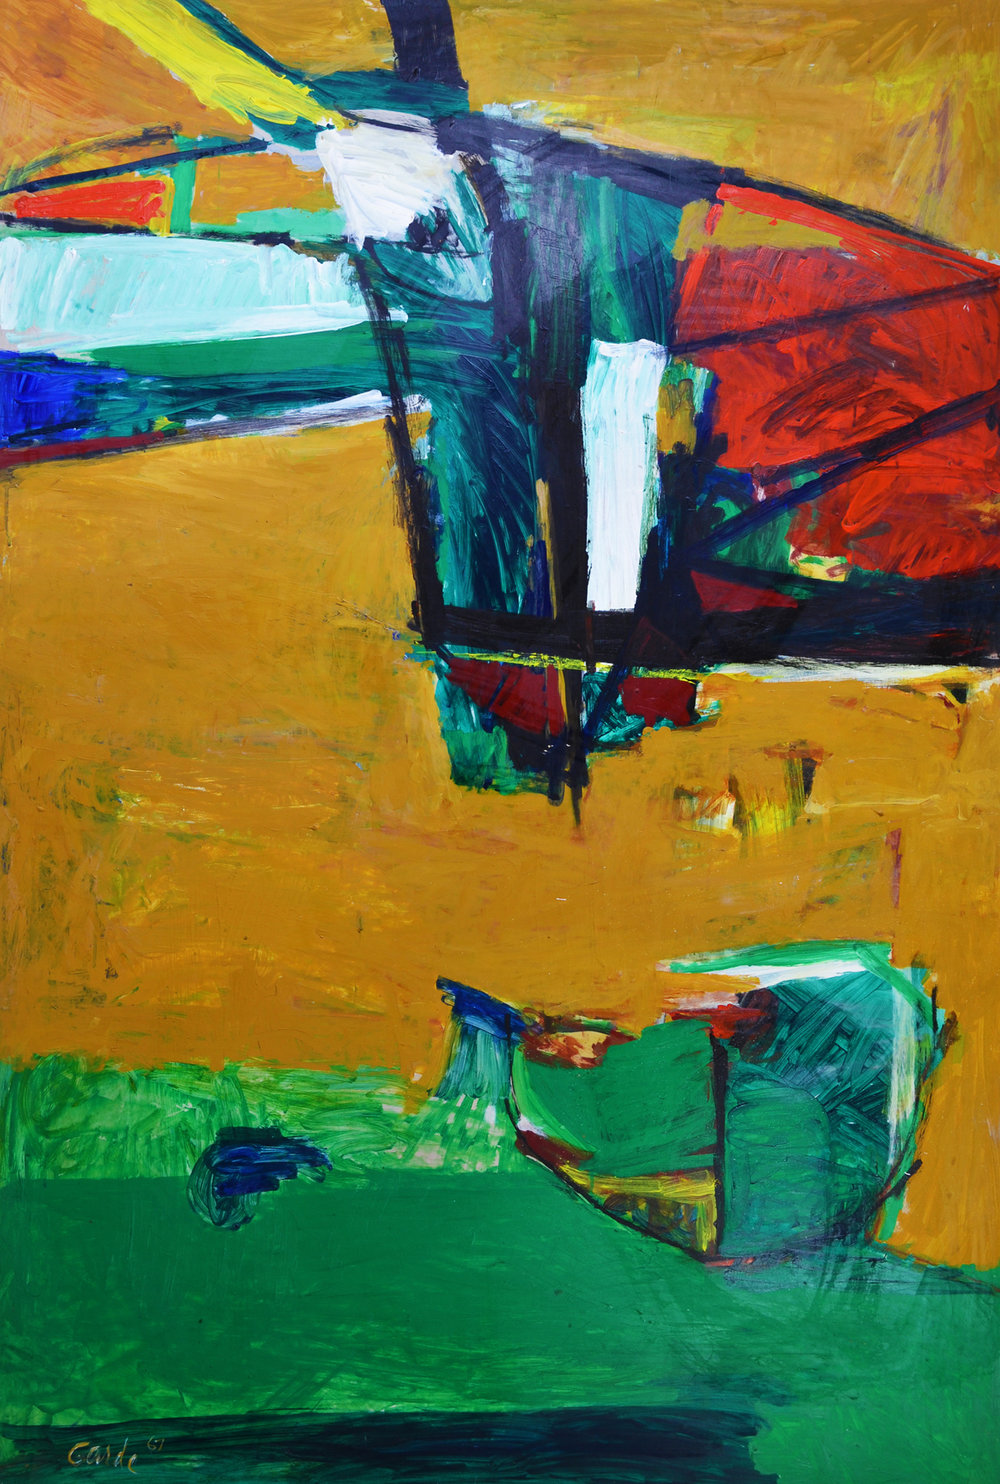 Launch , 1967. Oil on hardboard (masonite), 72 x 48 in. (183 x 122 cm.)